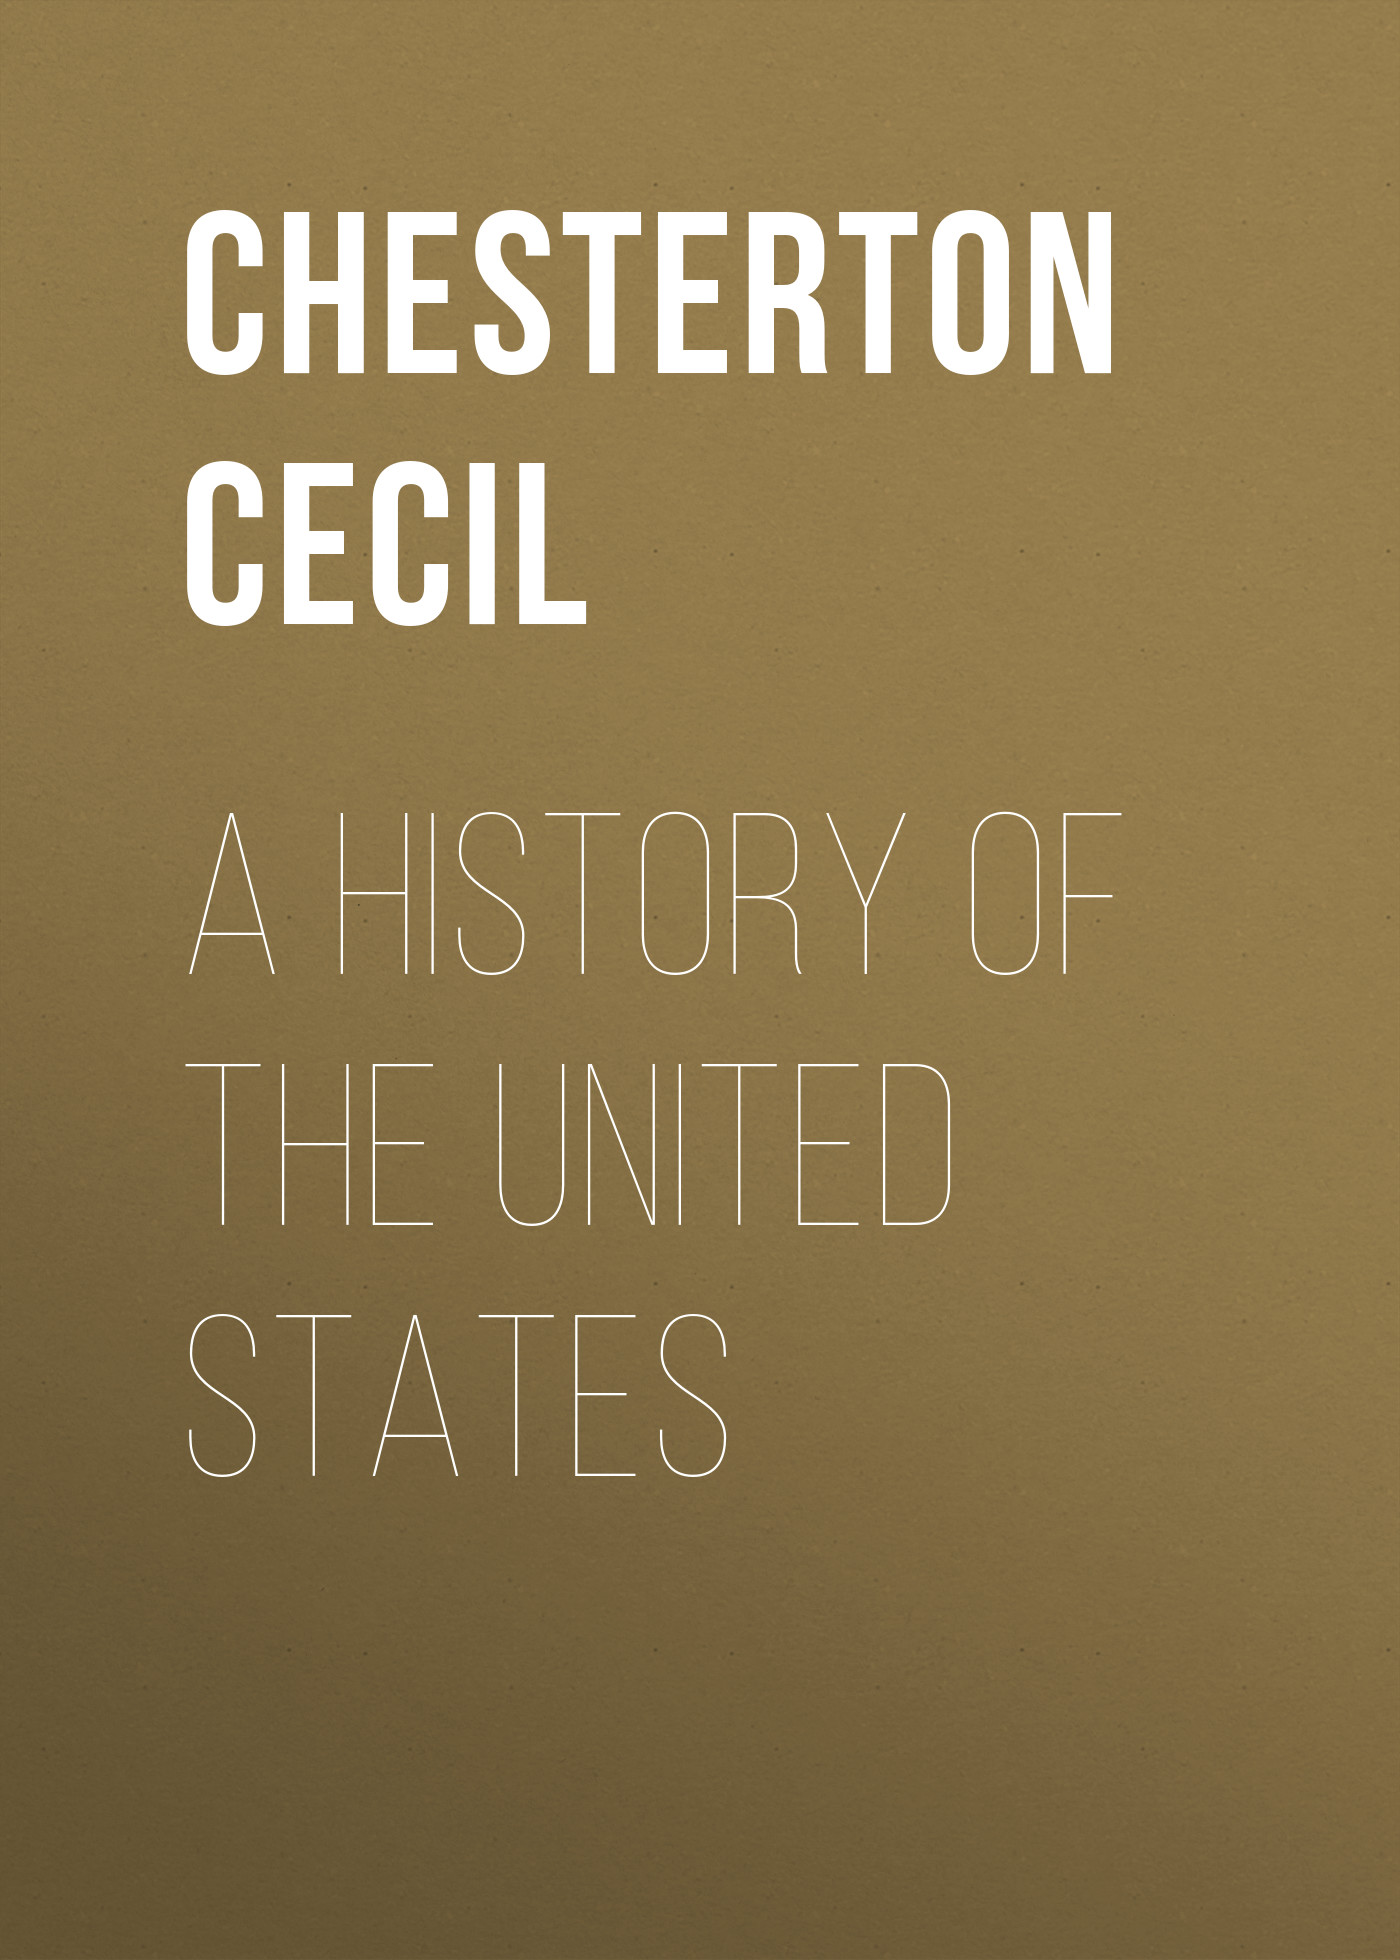 Chesterton Cecil A History of the United States [zob] the united states bussmann nh2am 400nhm2b 400a 500v fuse fuse original authentic